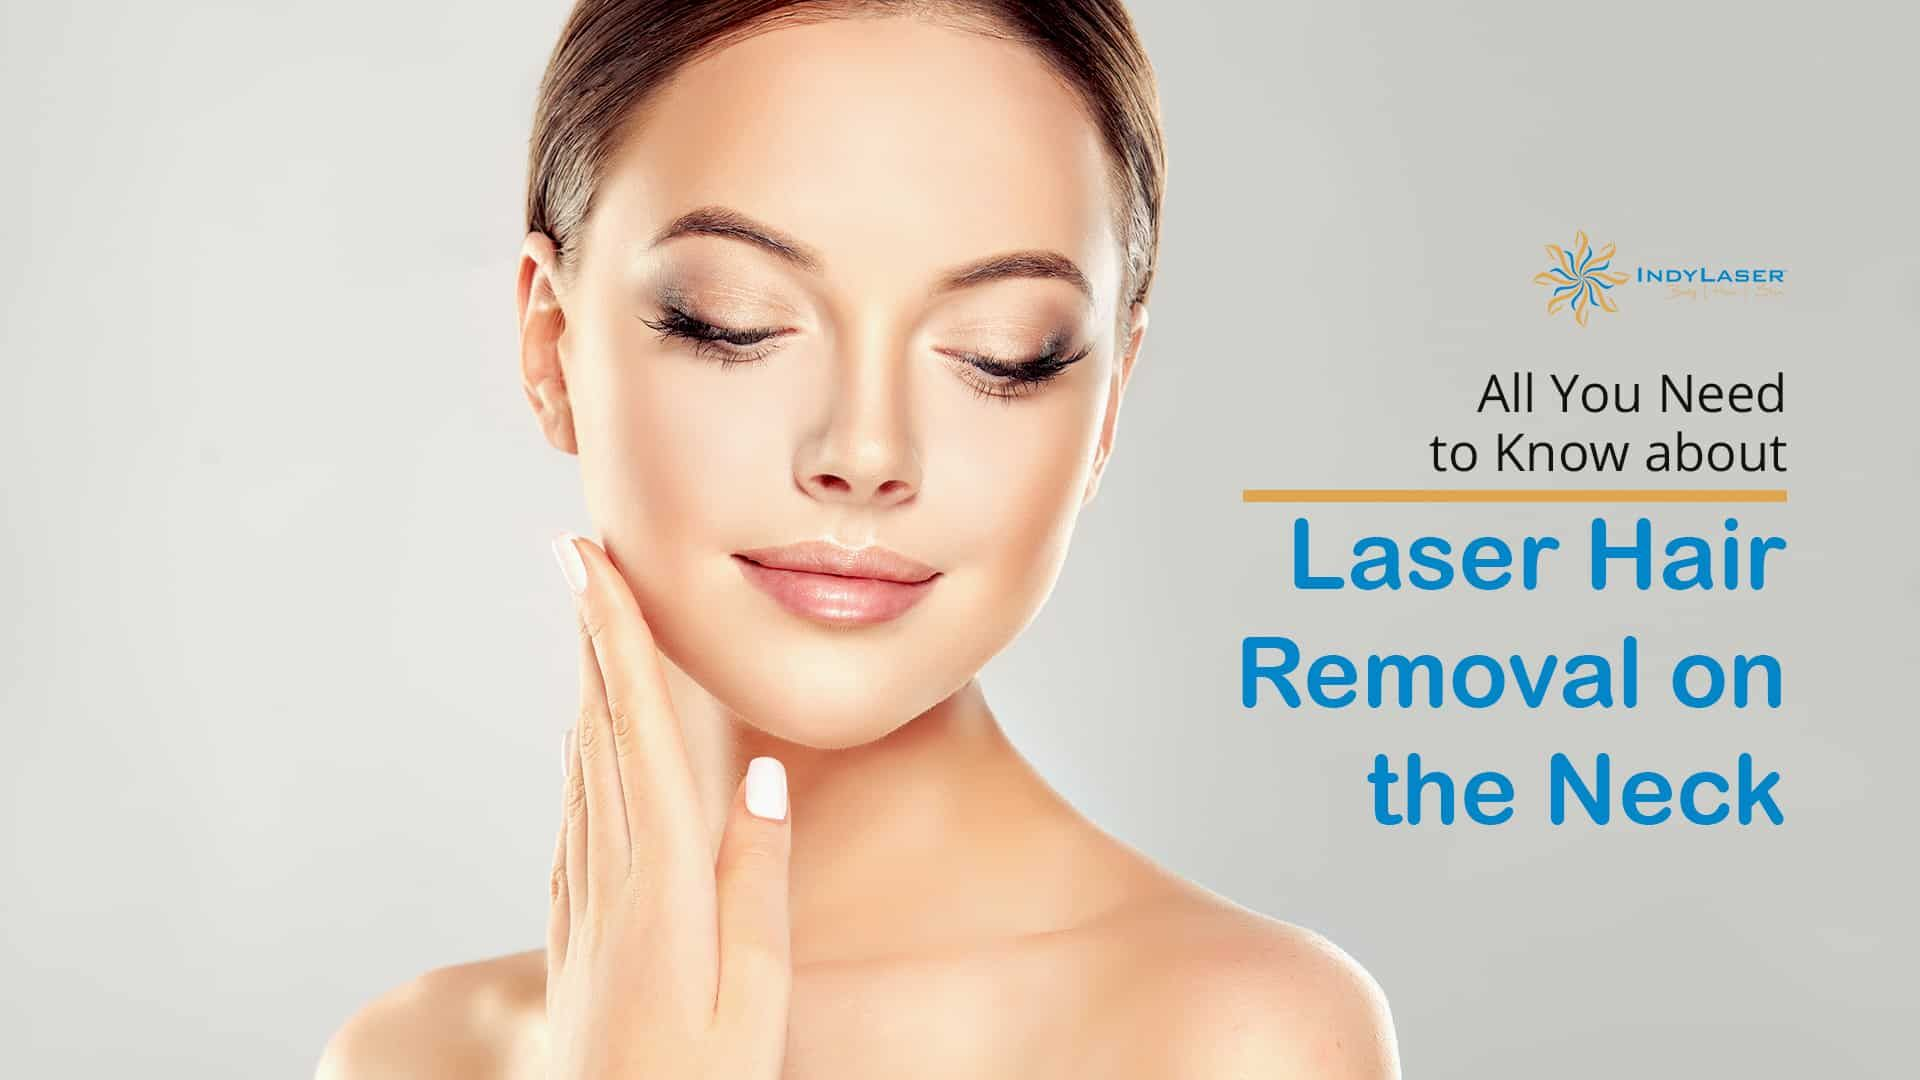 All You Need To Know About Laser Hair Removal On The Neck In 2020